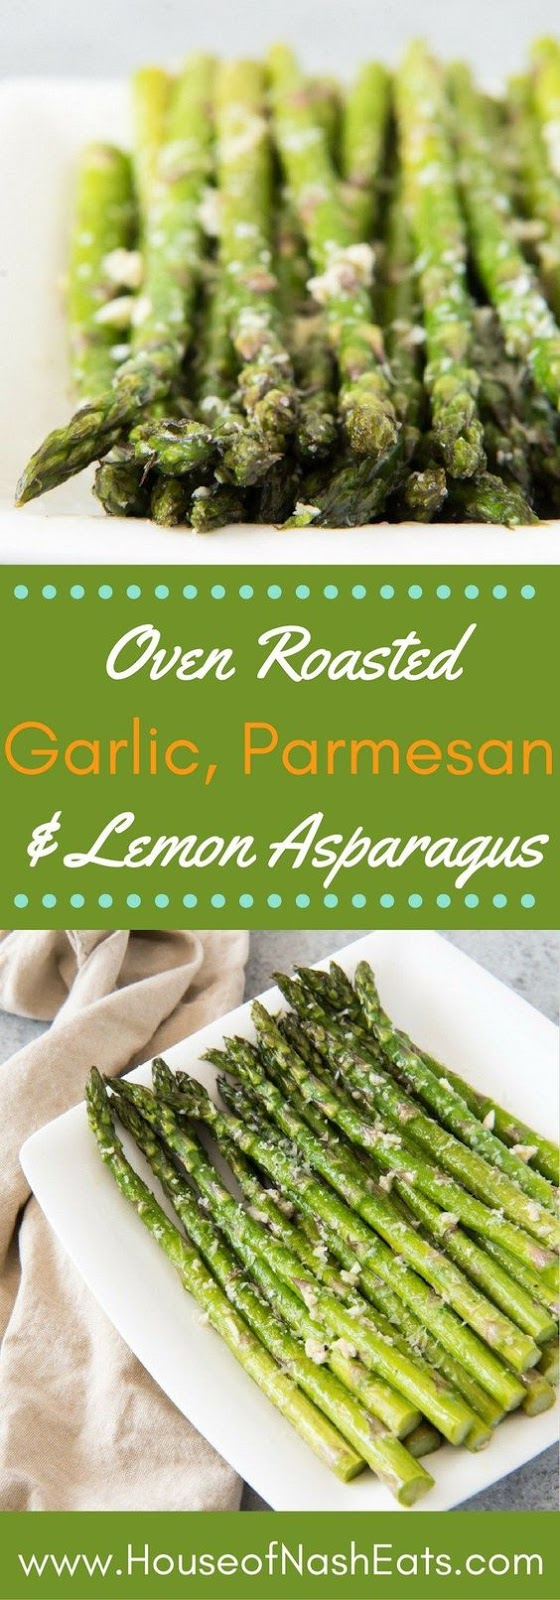 ★★★★☆ 5219 ratings       | OVEN ROASTED ASPARAGUS WITH GARLIC, PARMESAN, & LEMON #OVEN #ROASTED #ASPARAGUS #GARLIC #PARMESAN #LEMON